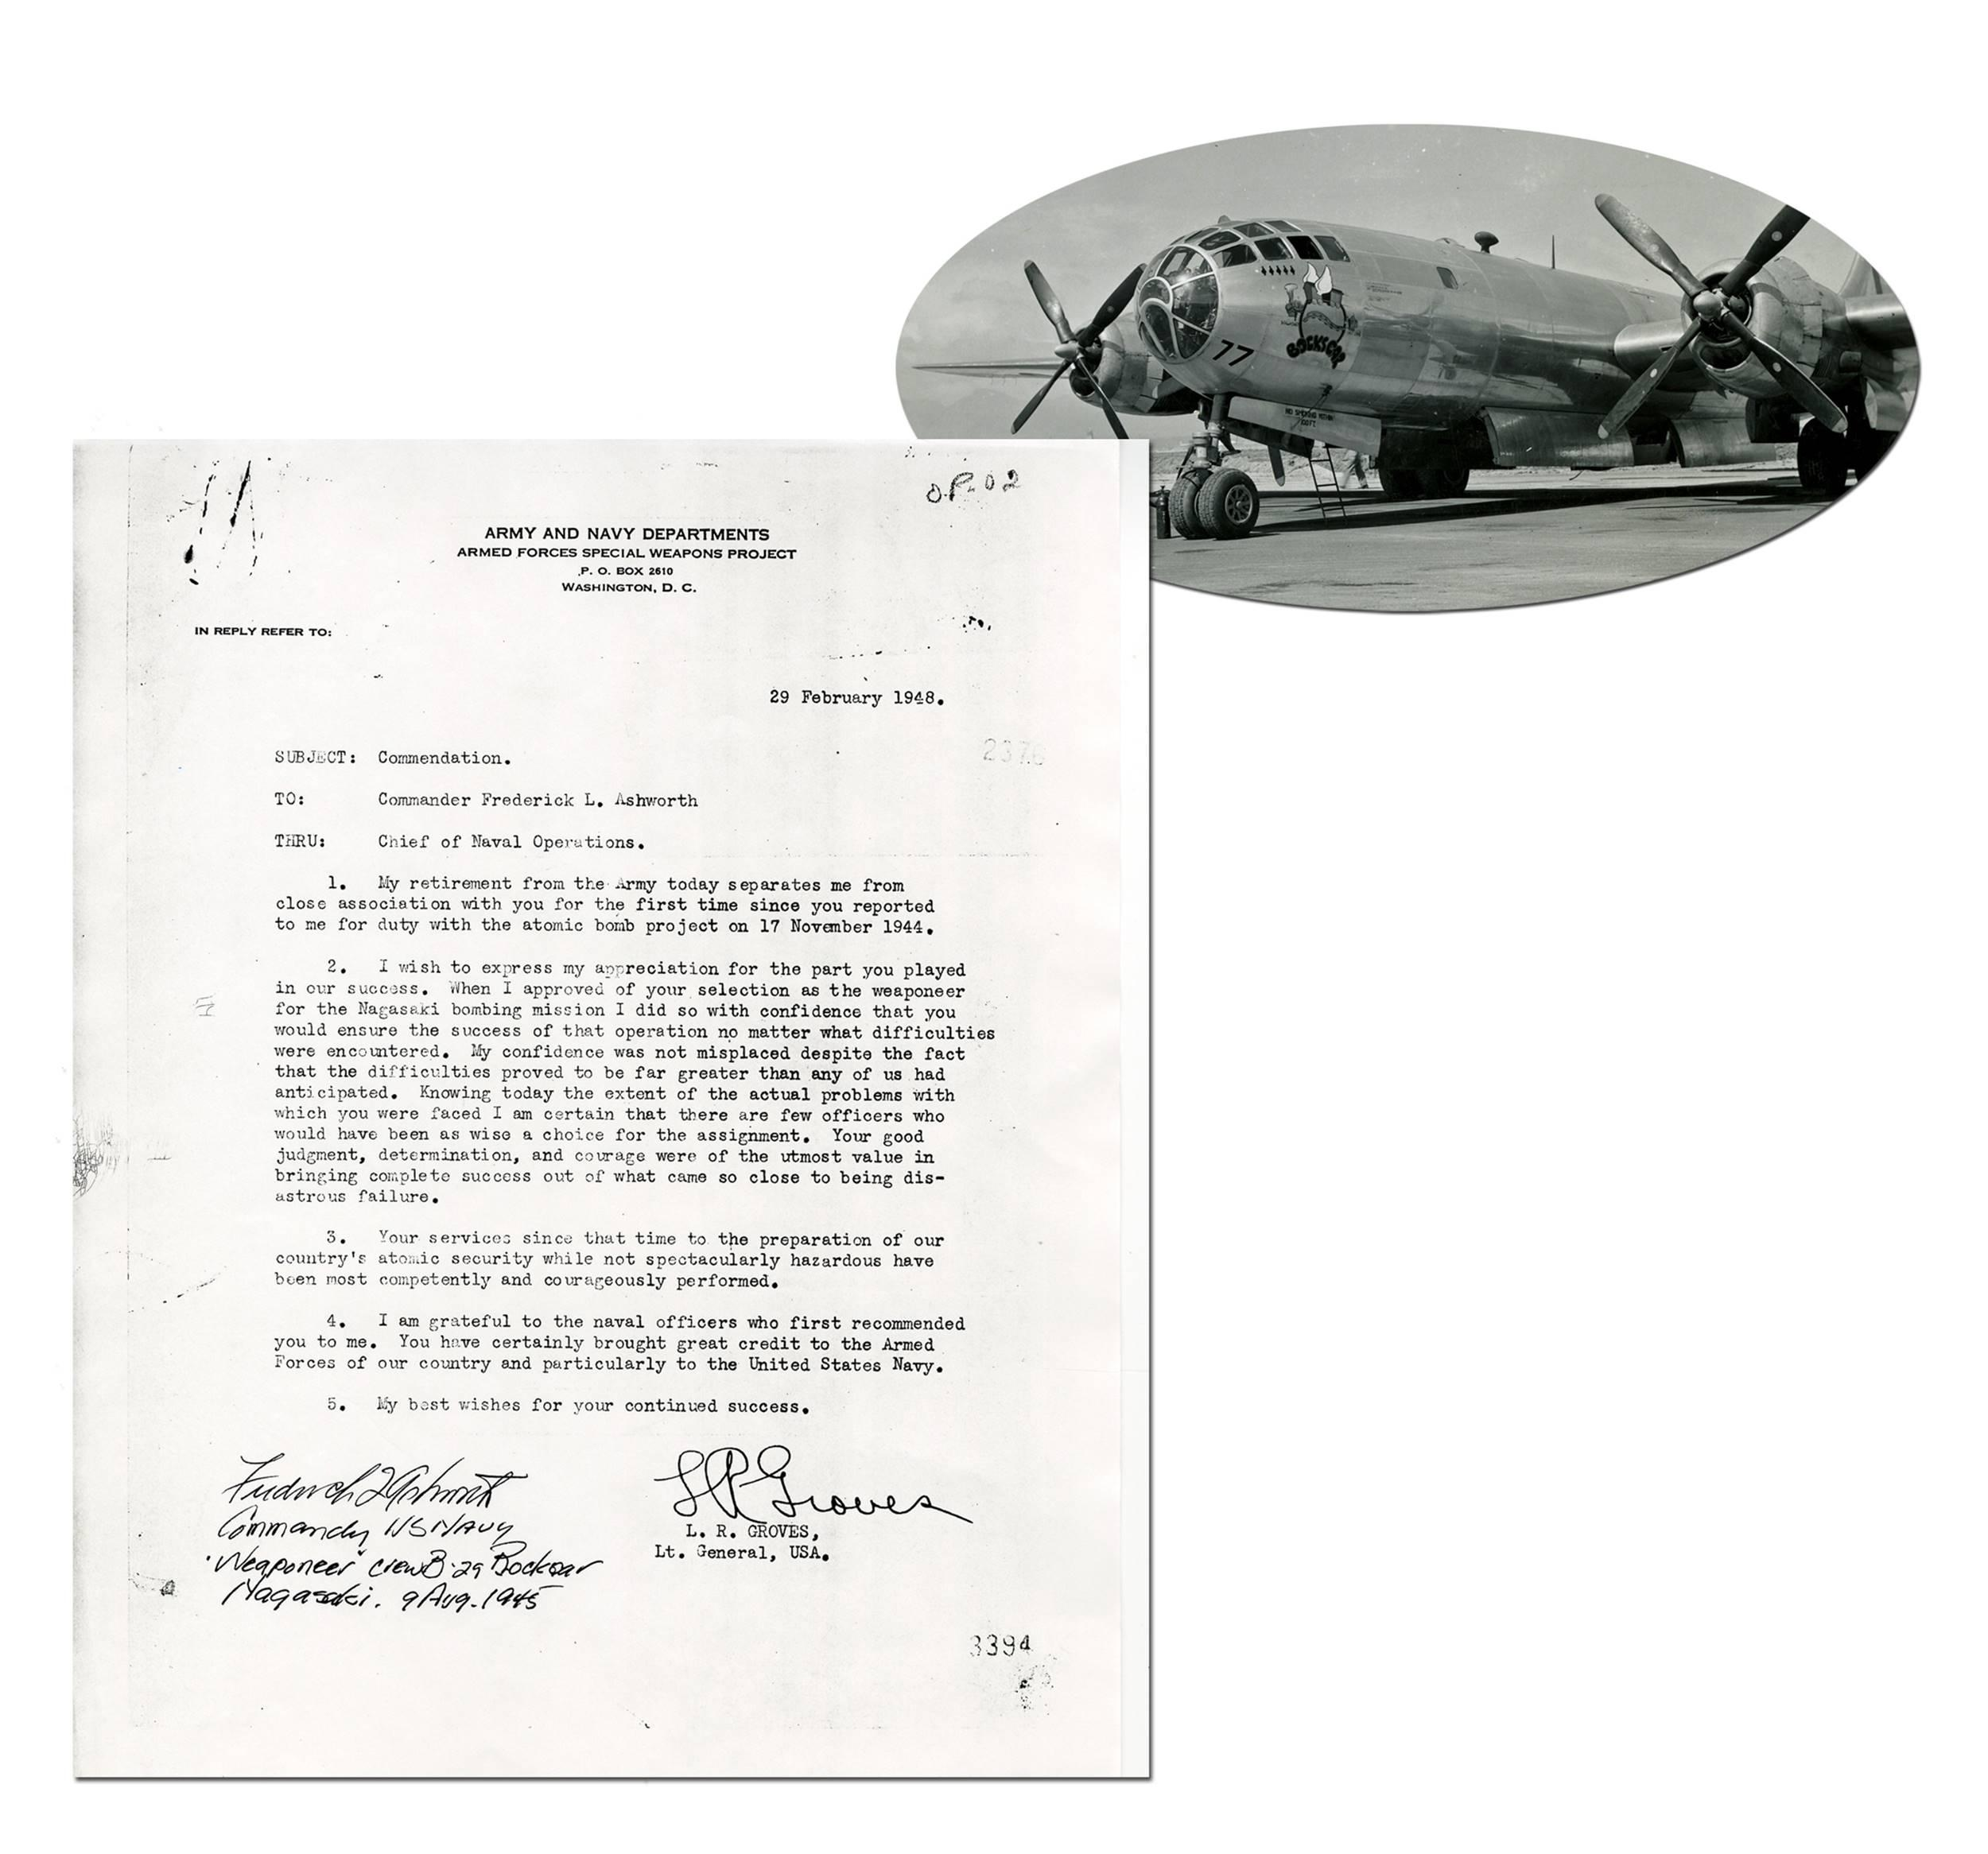 Bockscar Weaponeer Ashworth Autographs Groves Memo